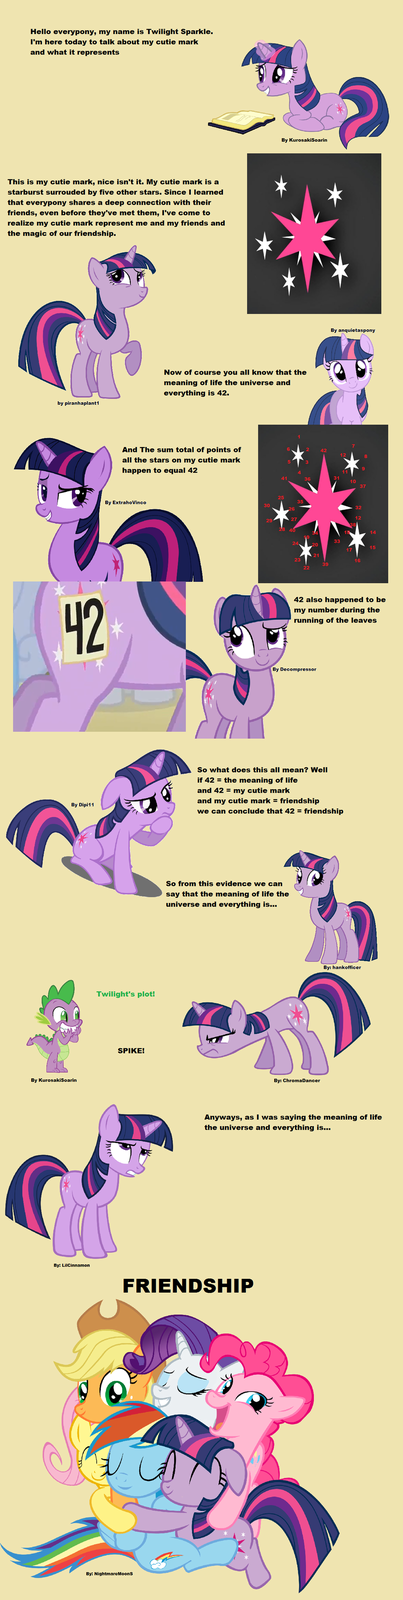 Twilight's Lecture: The Meaning of Life